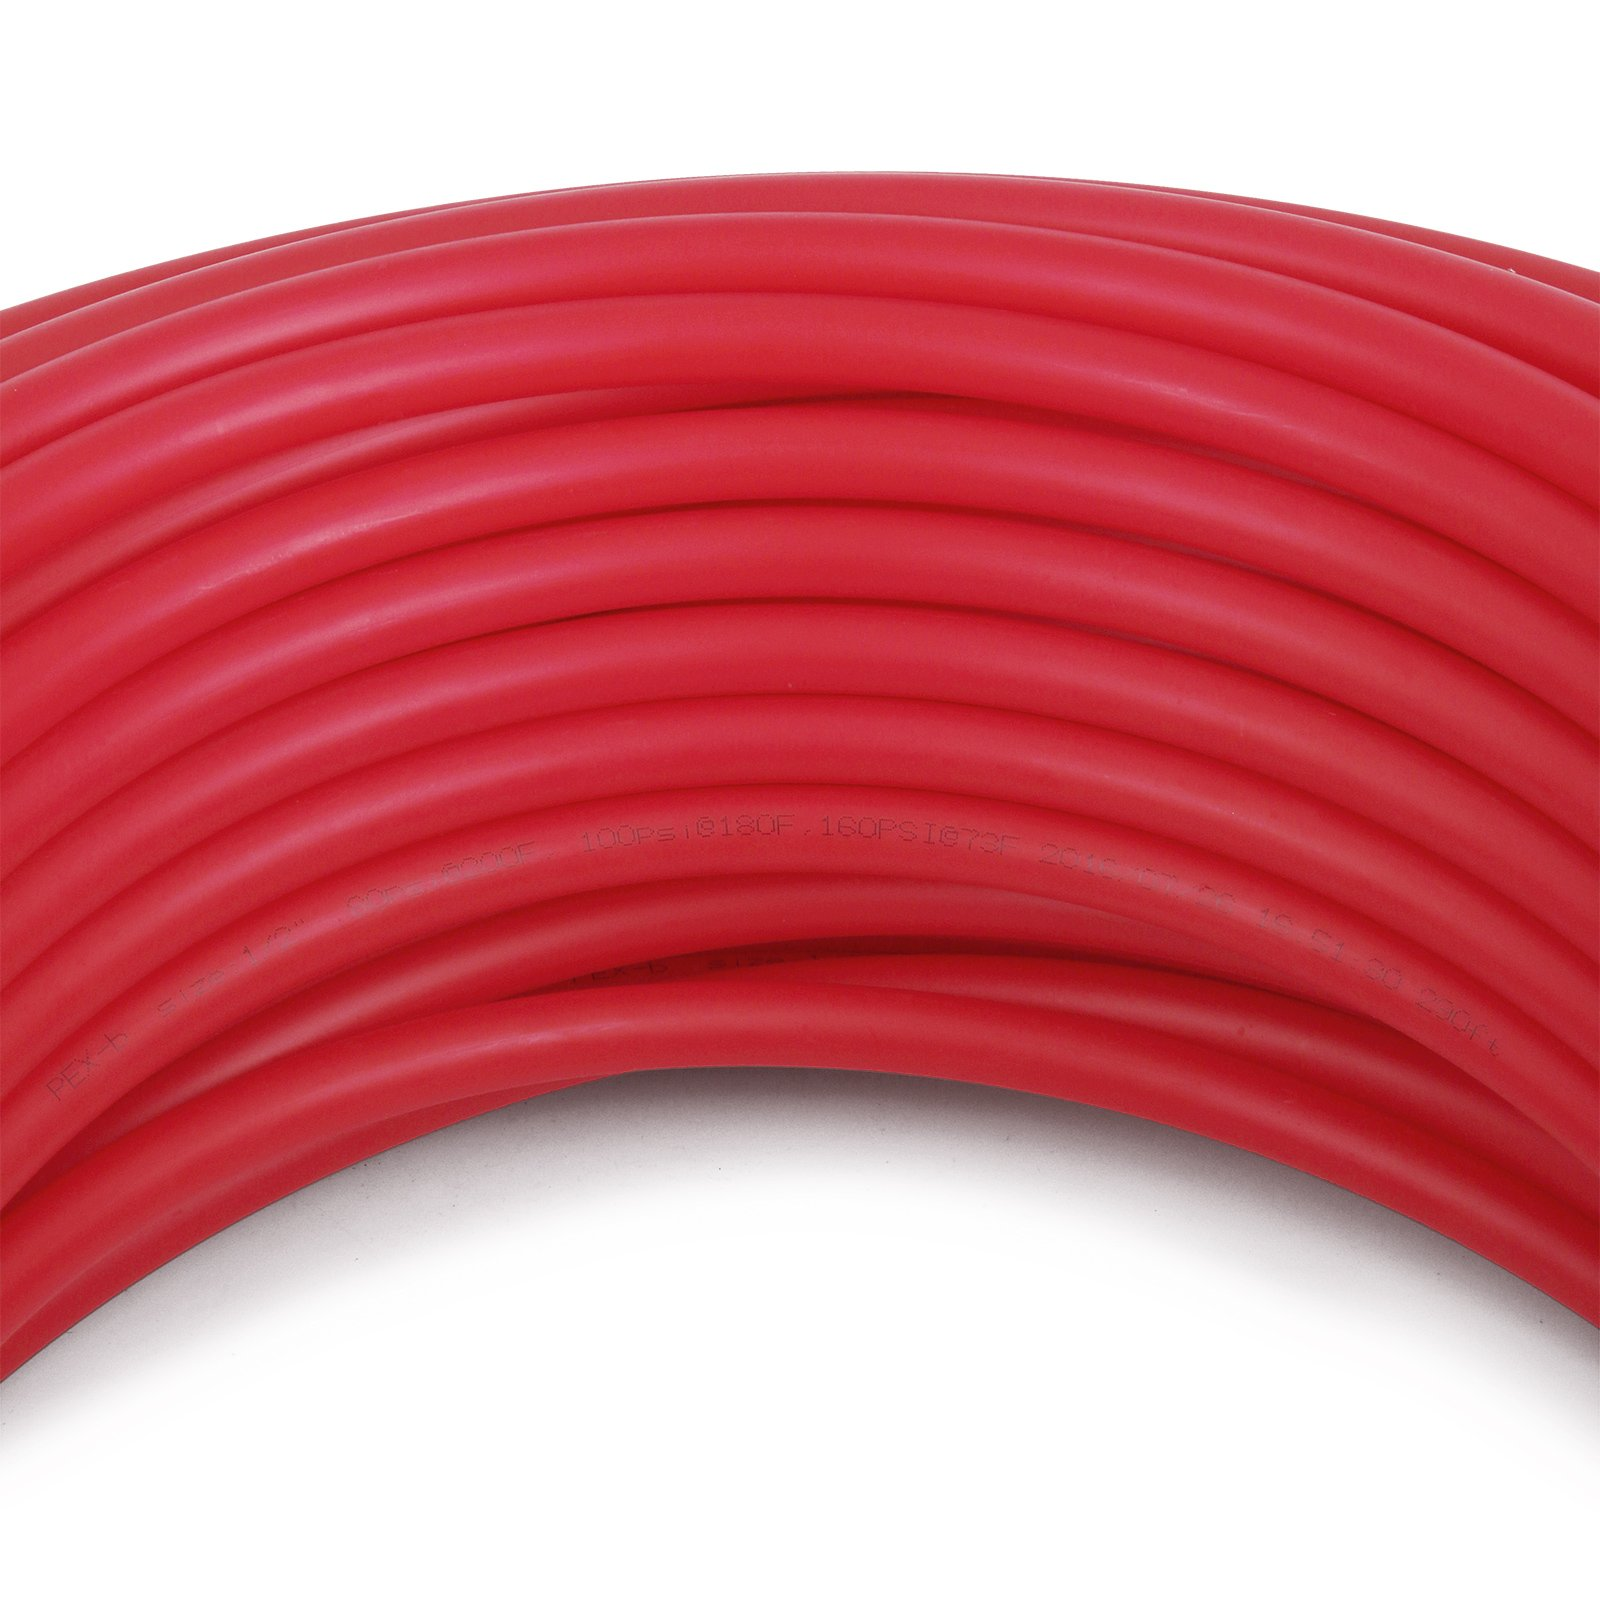 OrangeA PEX Tubing 1/2 Inch Potable Water Pipe 2 Rolls X 300Ft Tube Coil PEX-B Non Oxygen Barrier Piping for Hot Cold Plumbing and Radiant Floor Heating Applications by OrangeA (Image #7)